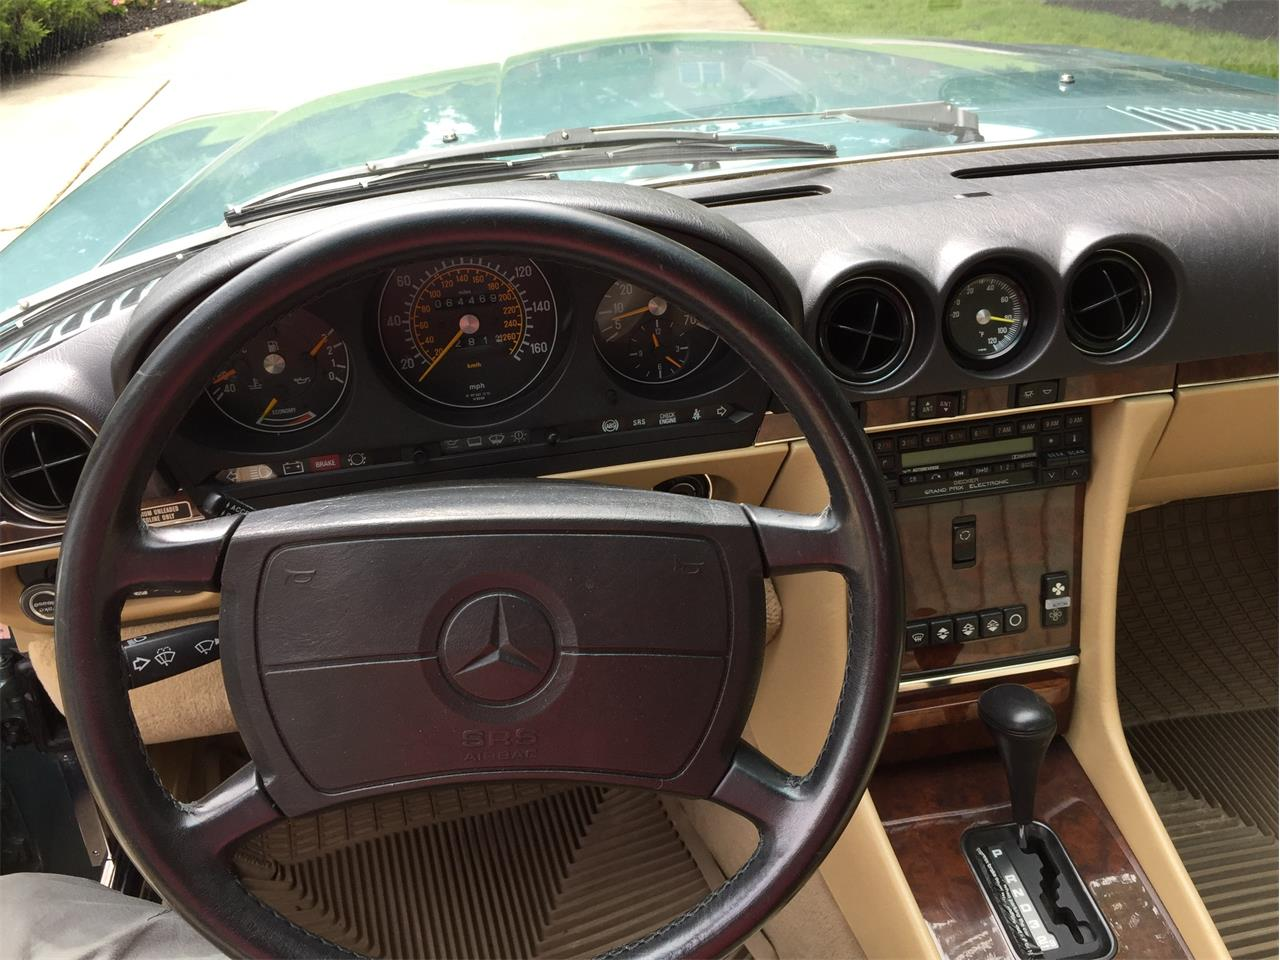 1989 Mercedes-Benz 560SL for sale in Mason, OH – photo 11